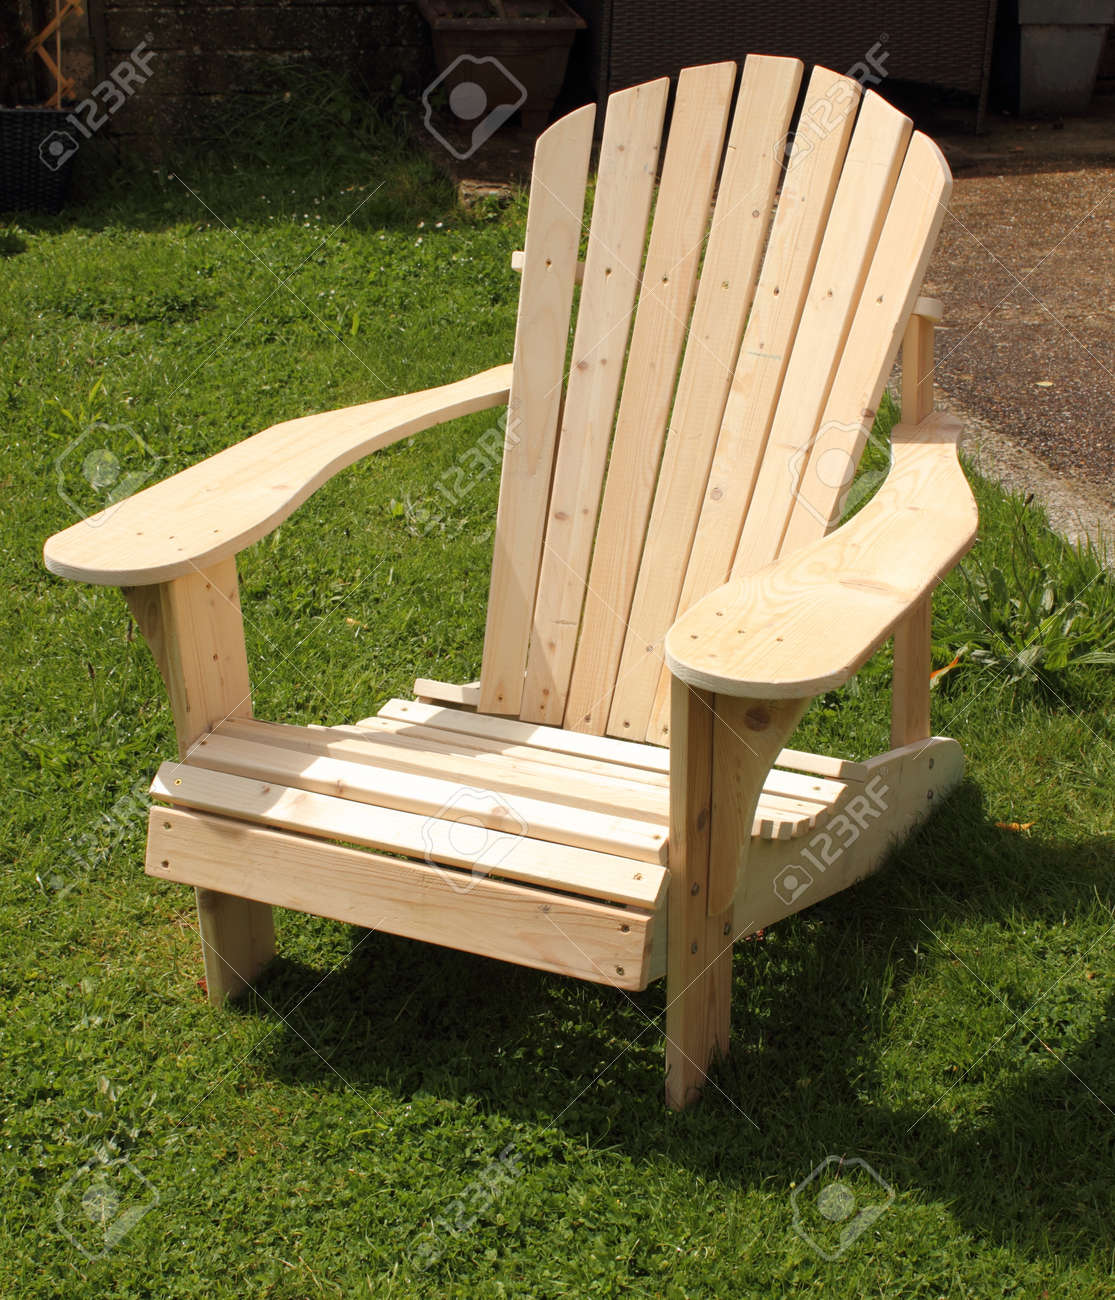 a handmade adirondack chair made out of old recycled wood and